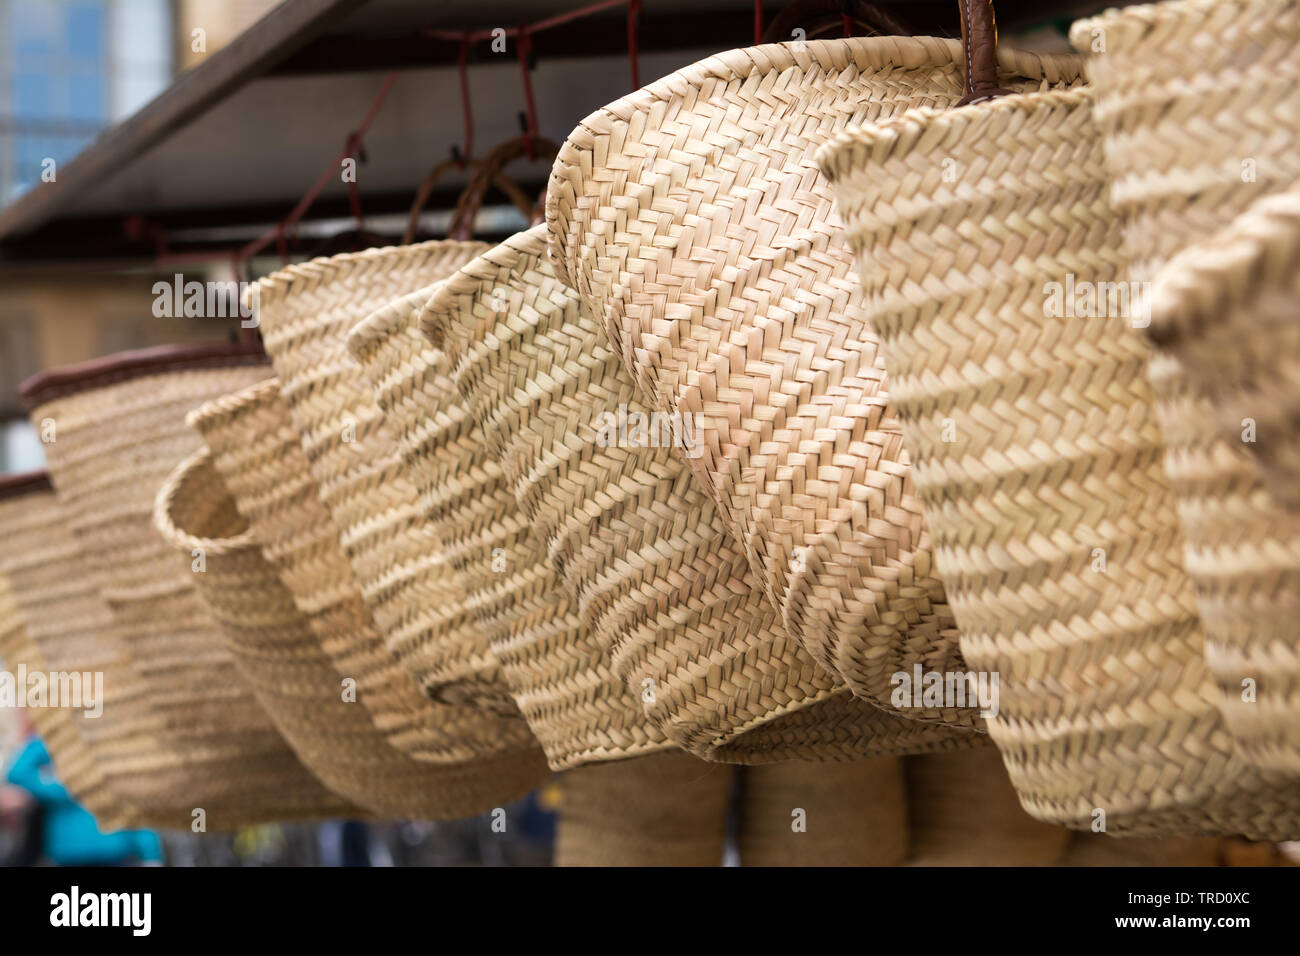 Close up of wicker baskets for sale at local market - Stock Image